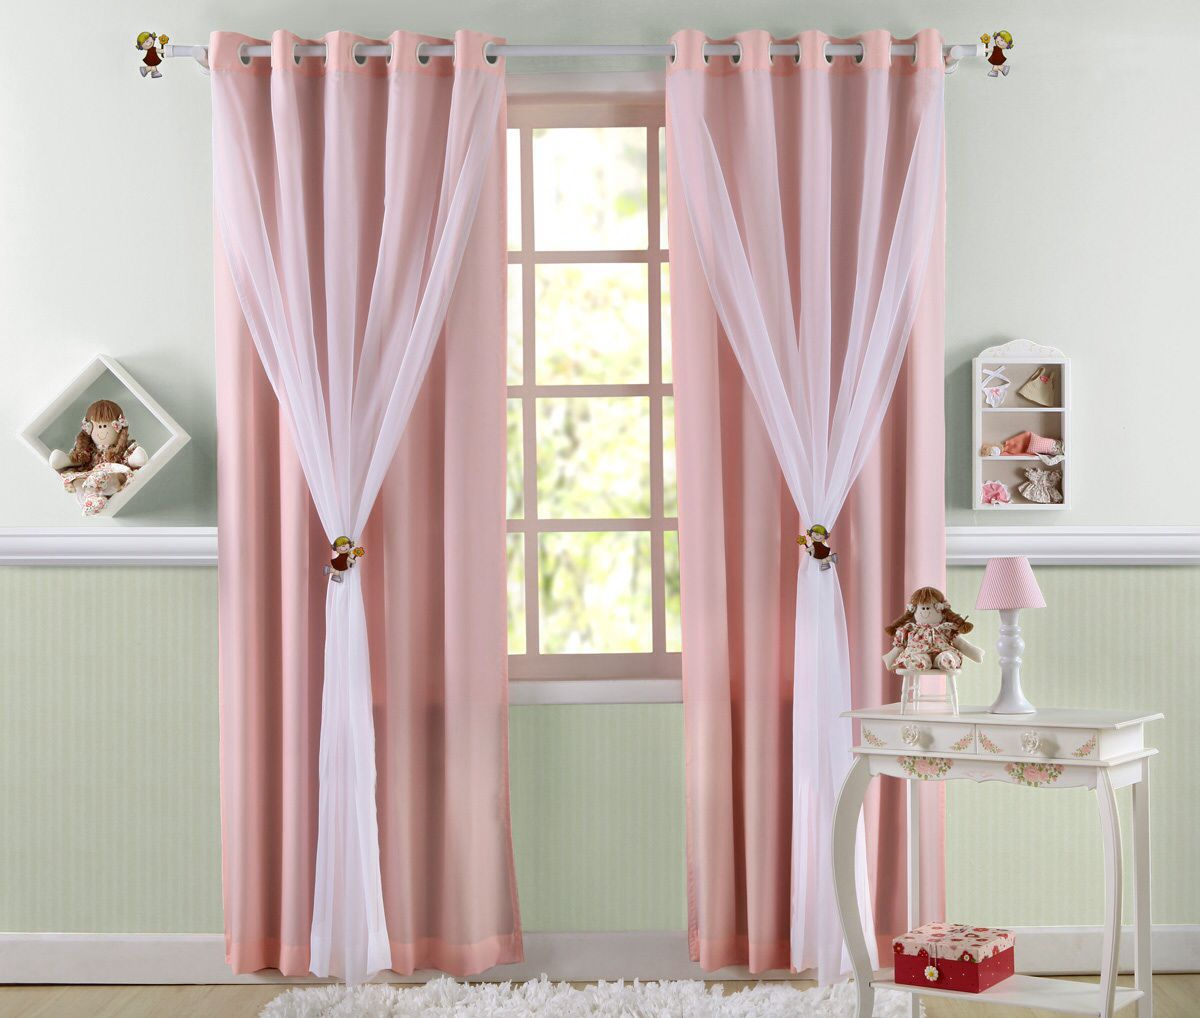 Cortina Decoracion Cortina Infantil Rosa Decoración Pinterest Cortinas